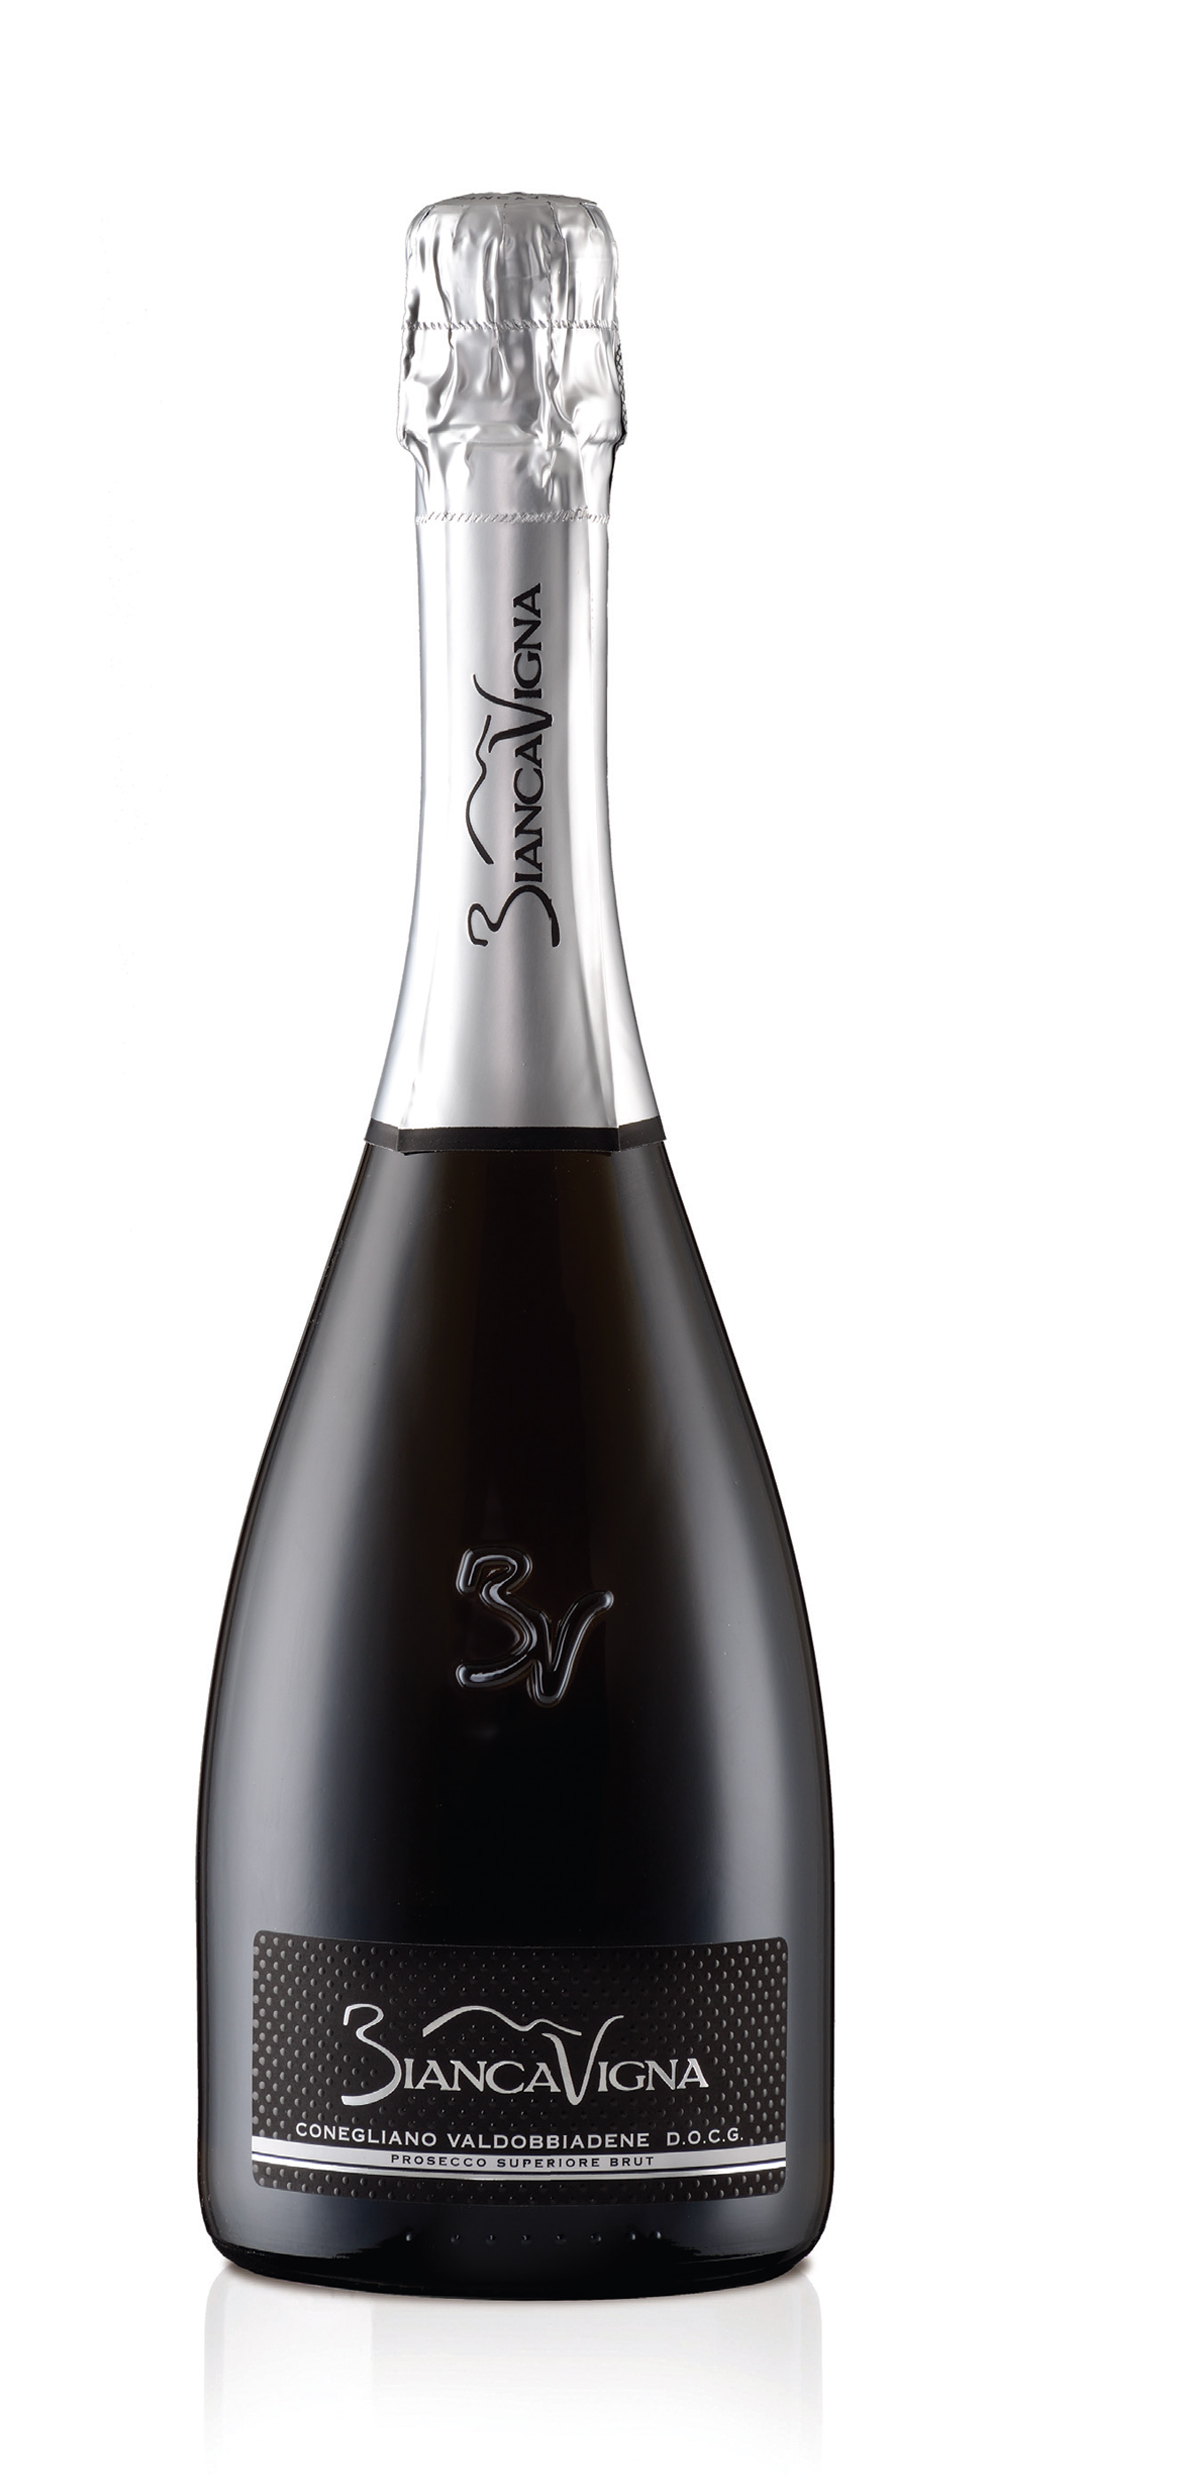 Wine-Bianca-Vigna-single-Brut-Superiore.jpg